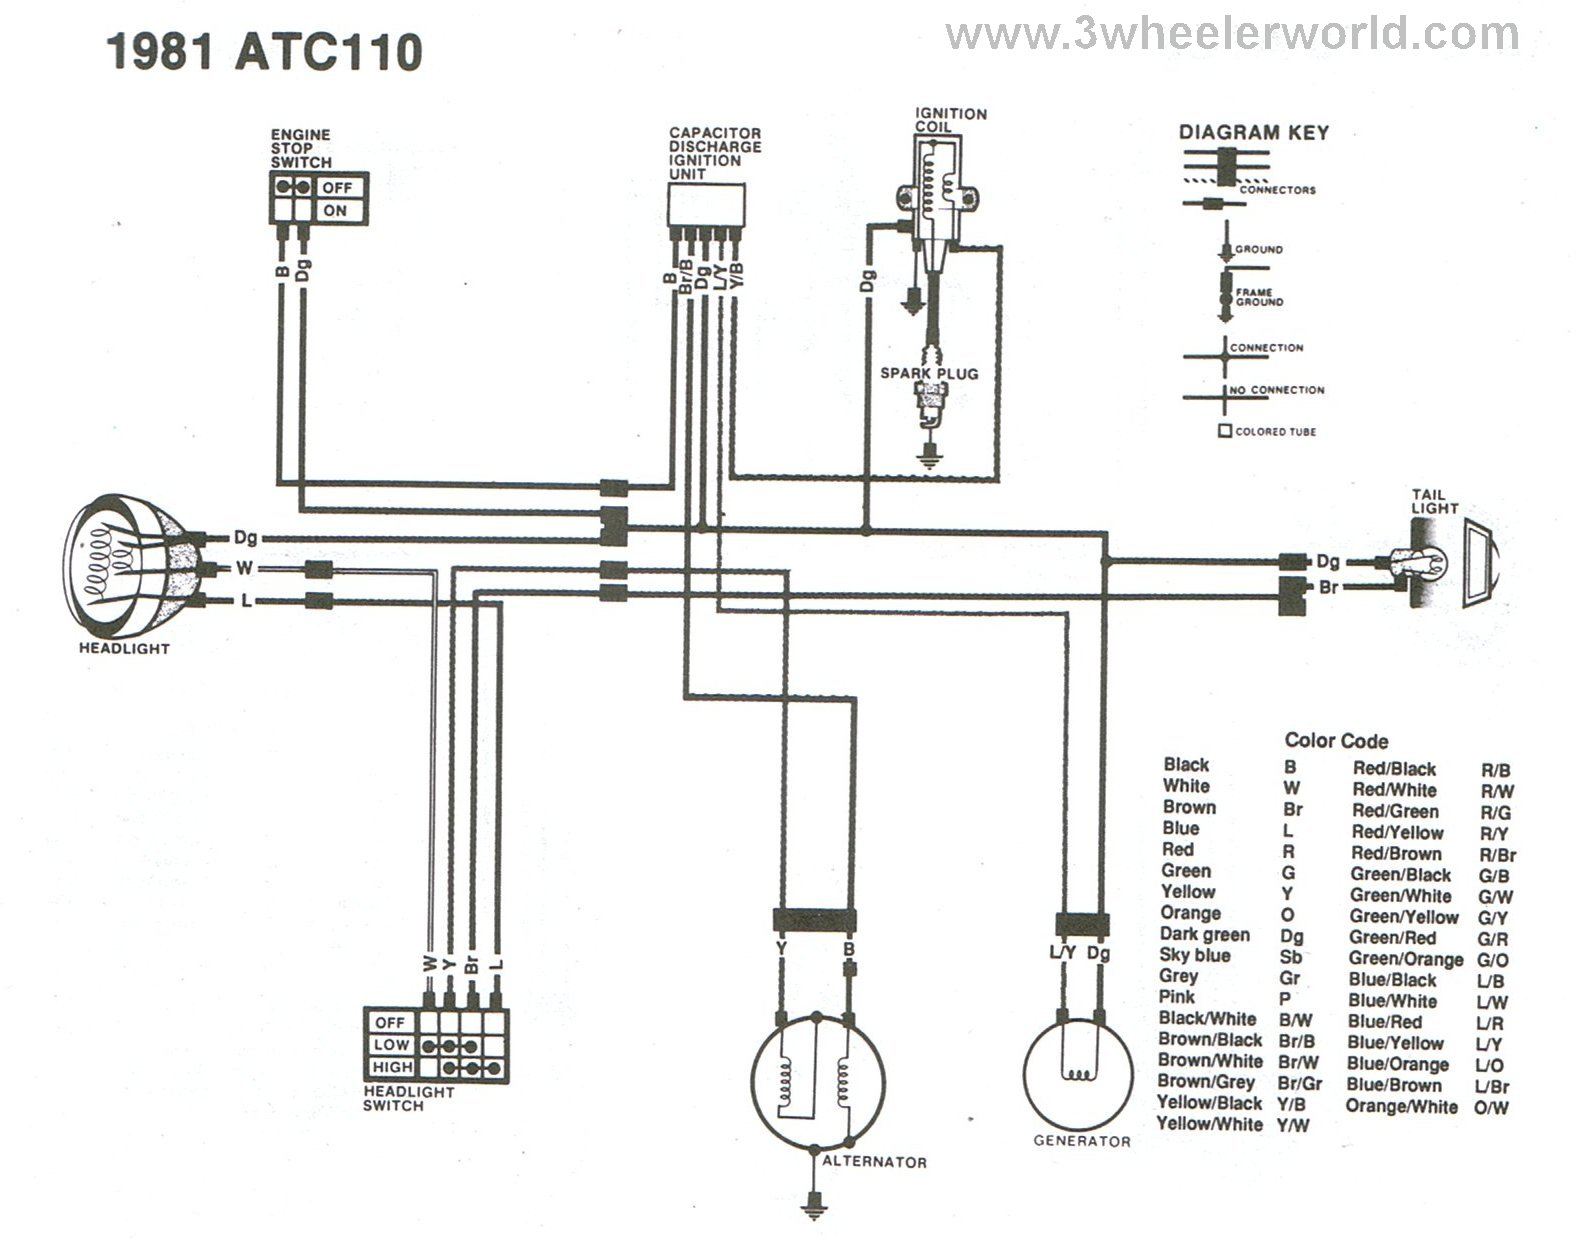 ATC110x81 3 wheeler world tech help honda wiring diagrams wiring diagram for 1984 honda atc 70 at honlapkeszites.co